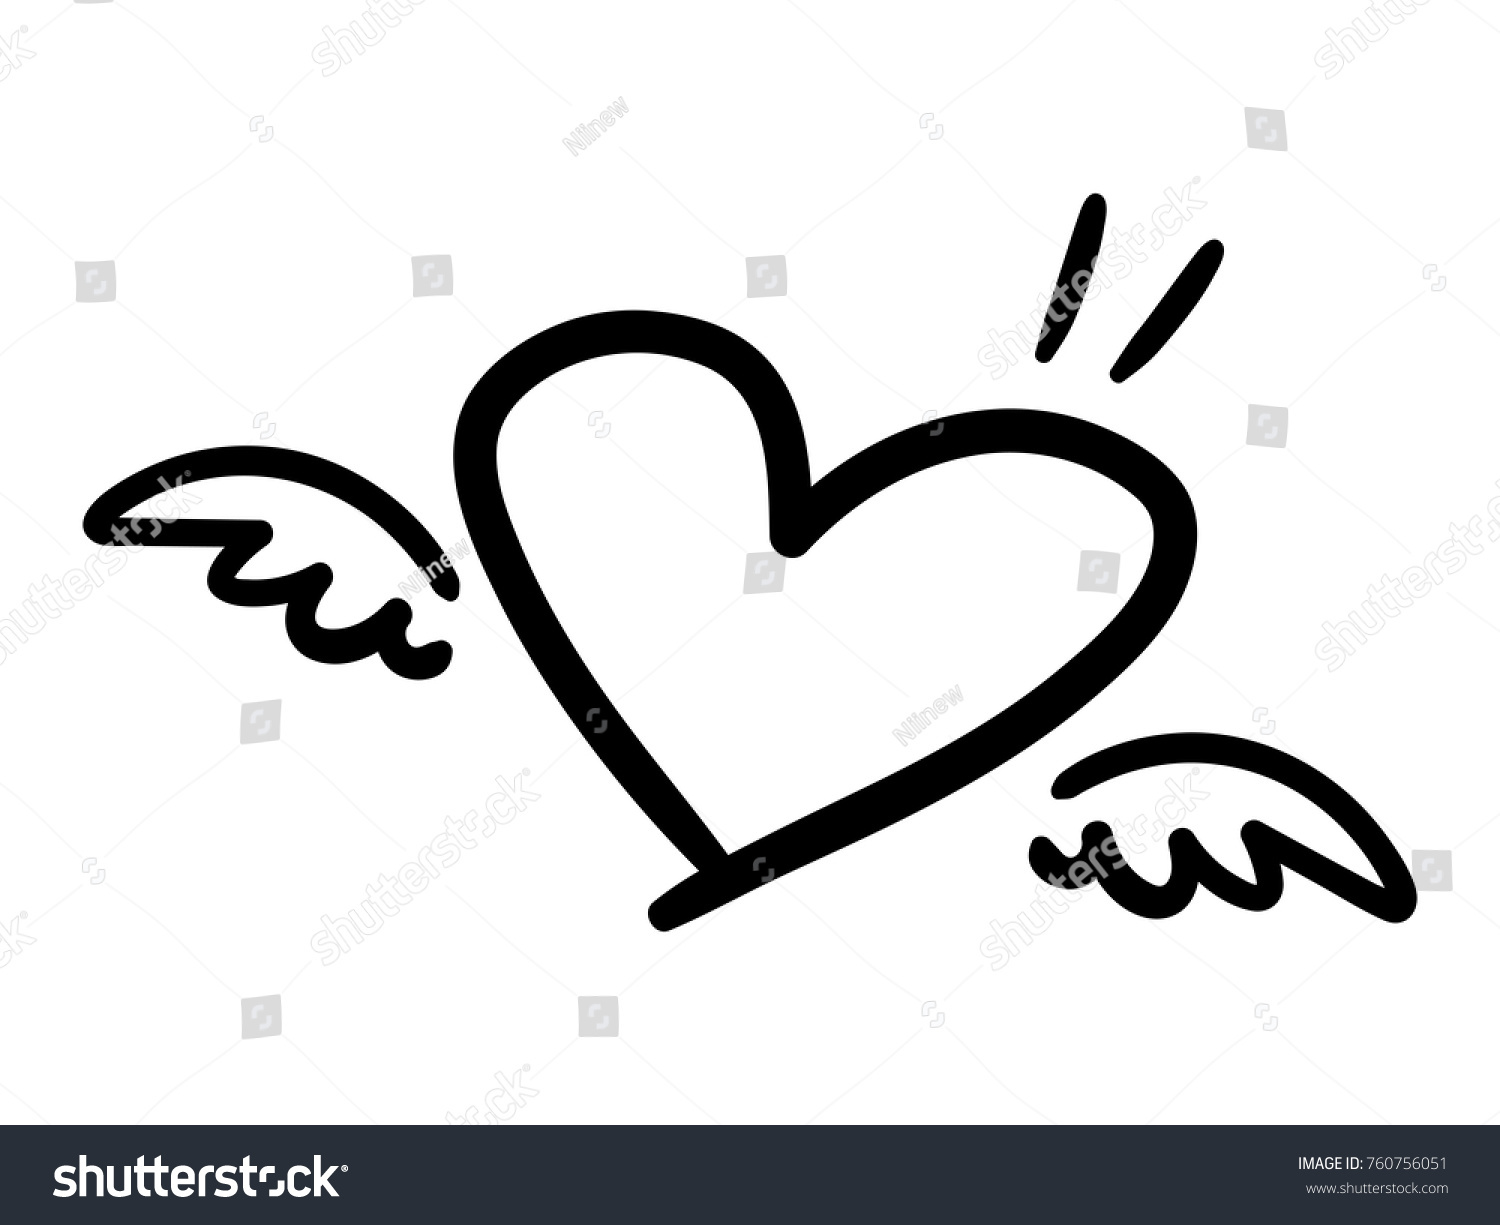 Vector illustration handwritten heart shape little stock vector vector illustration of handwritten heart shape with little wings isolated on a white background buycottarizona Images